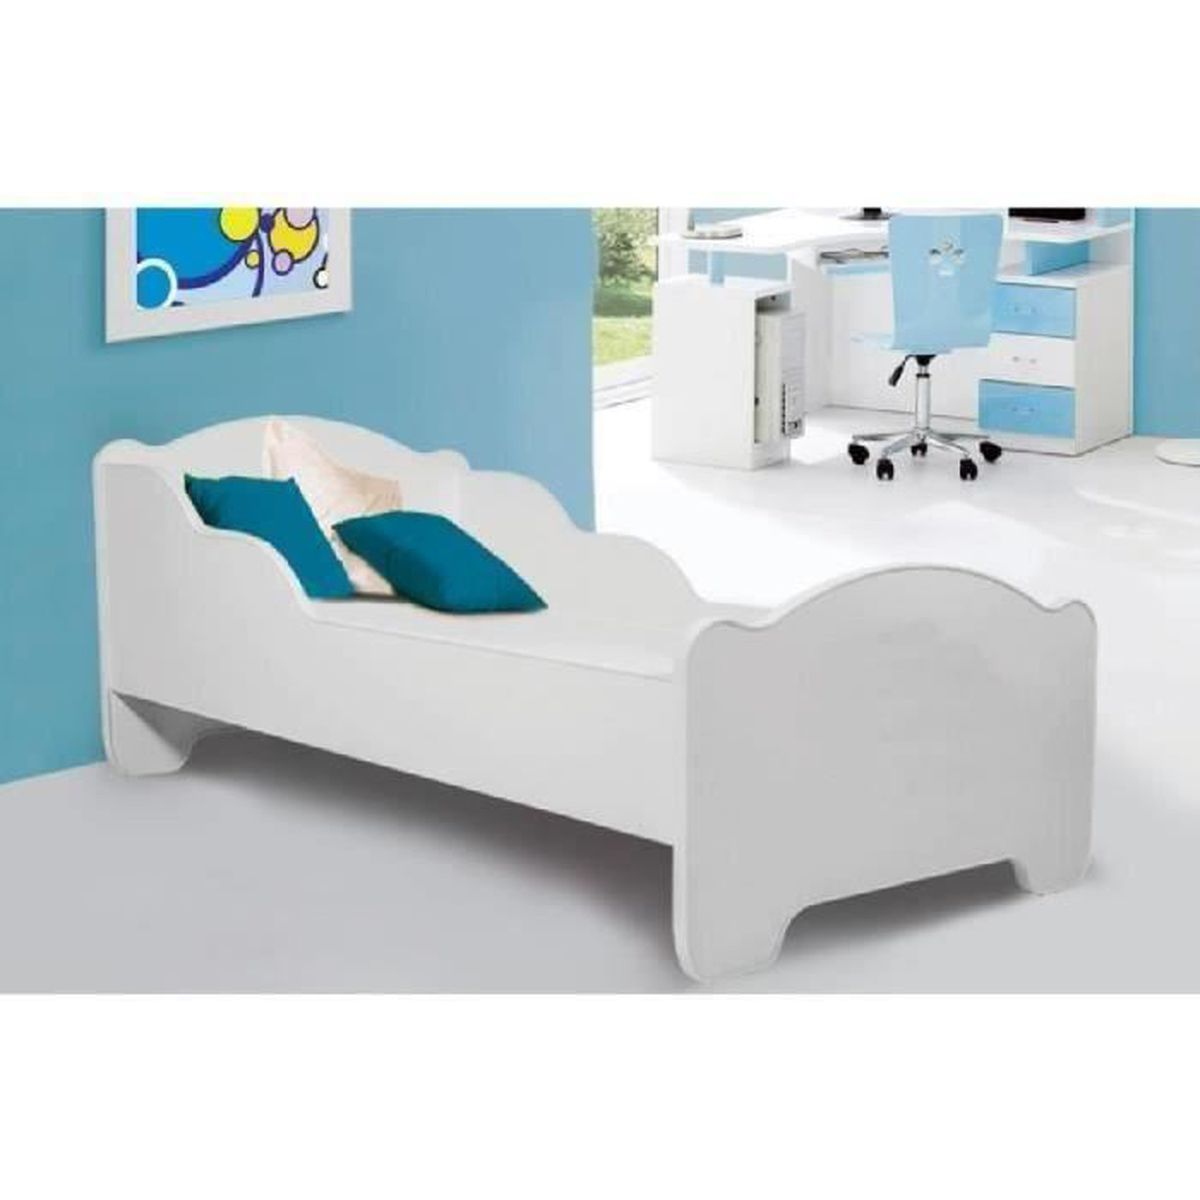 lit enfant m 160x80cm matelas sommier d achat vente lit complet lit enfant m 160x80cm mate. Black Bedroom Furniture Sets. Home Design Ideas